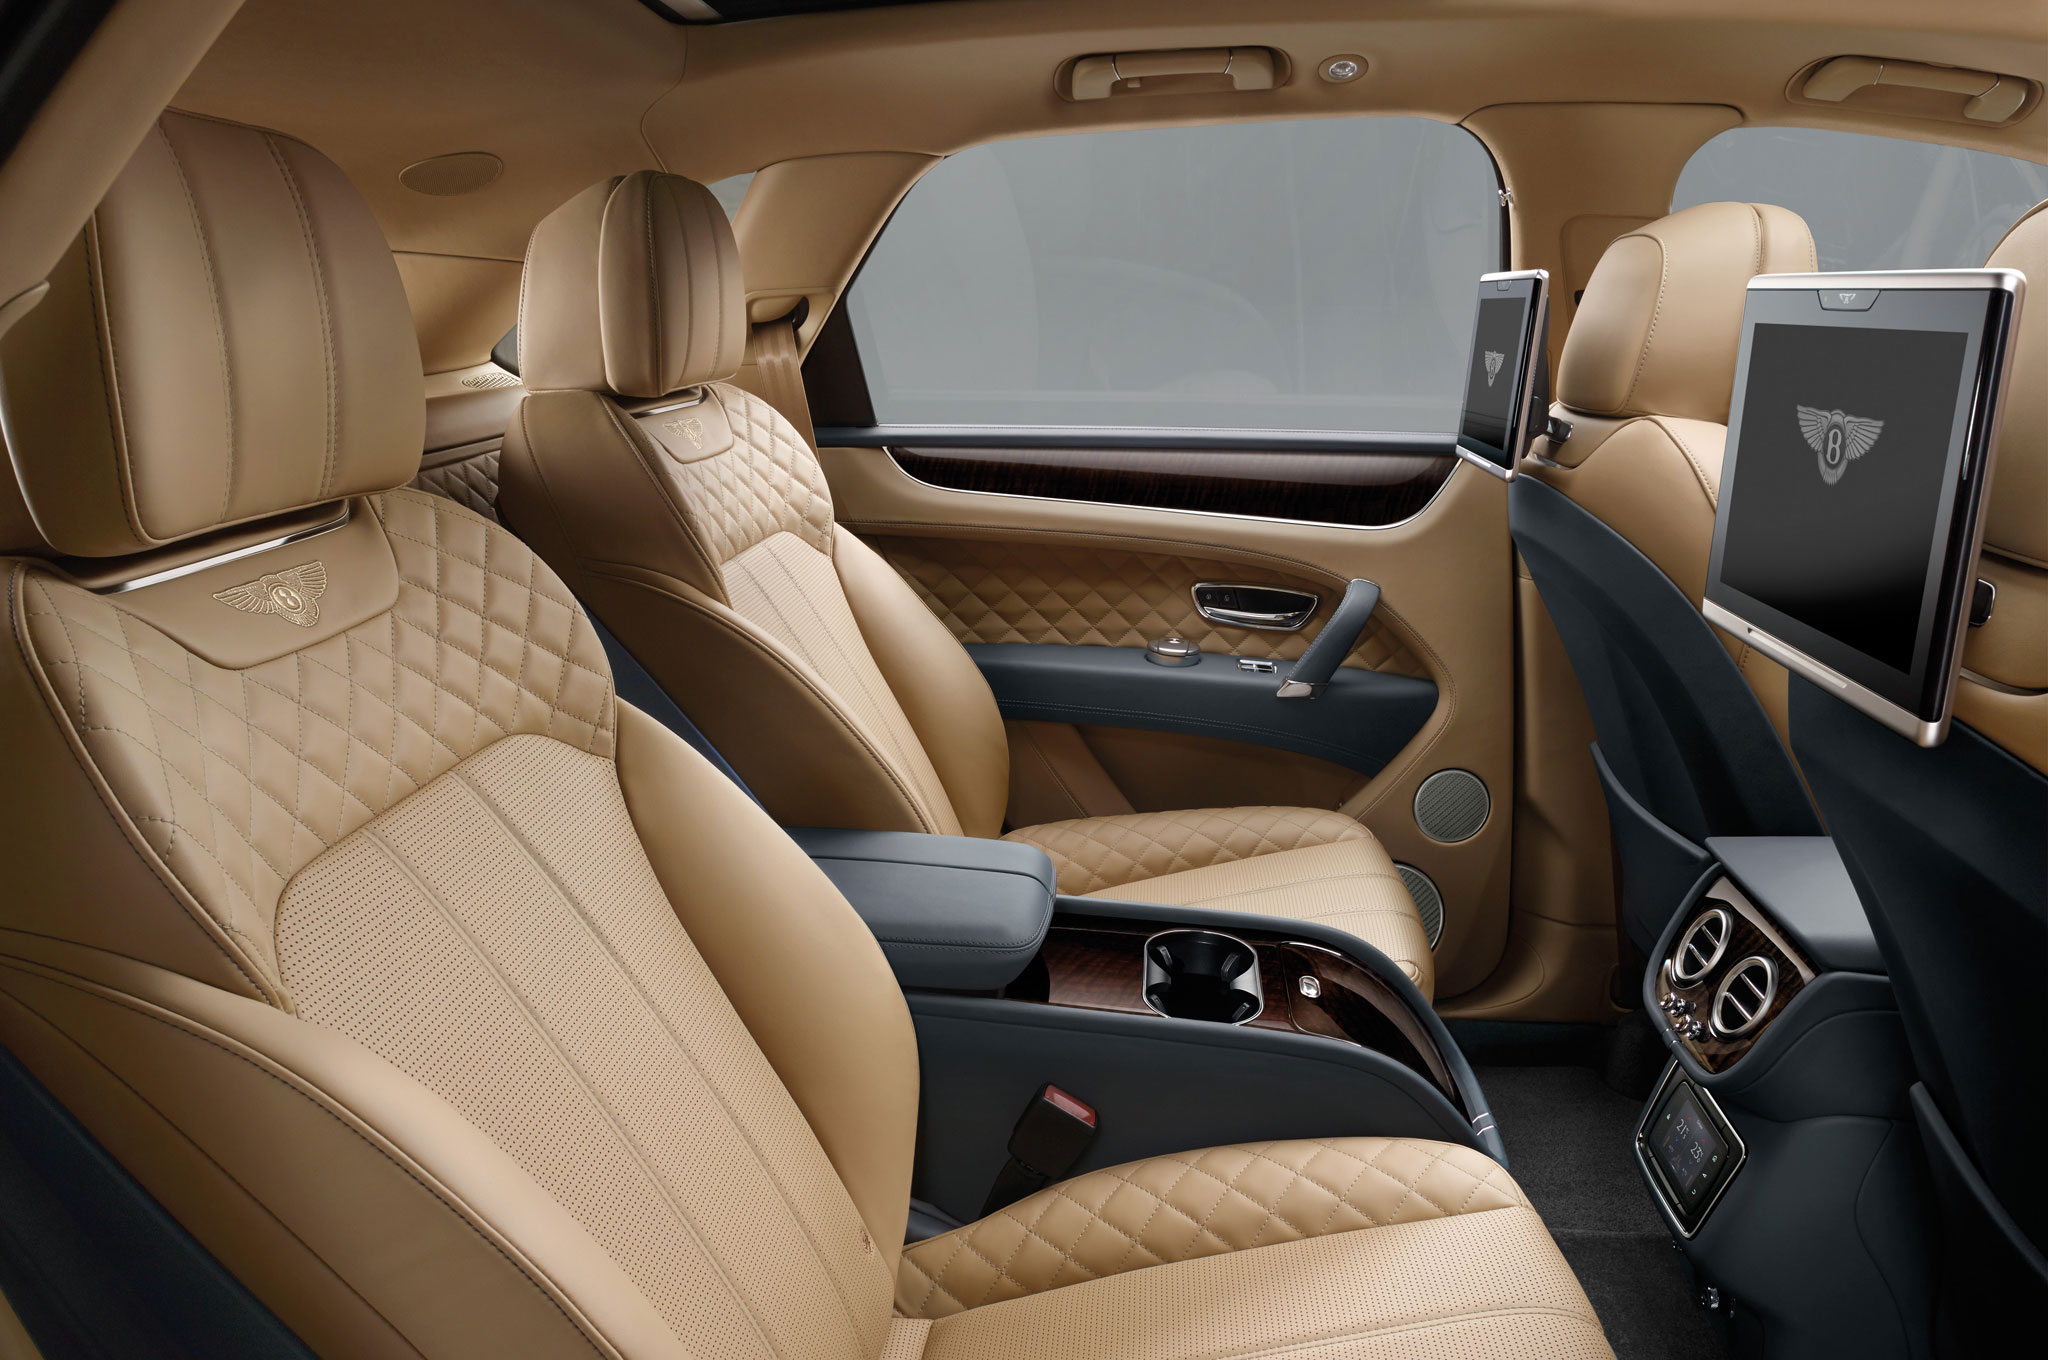 2017 Bentley Bentayga Rear Seats Interior (Photo 11 of 16)